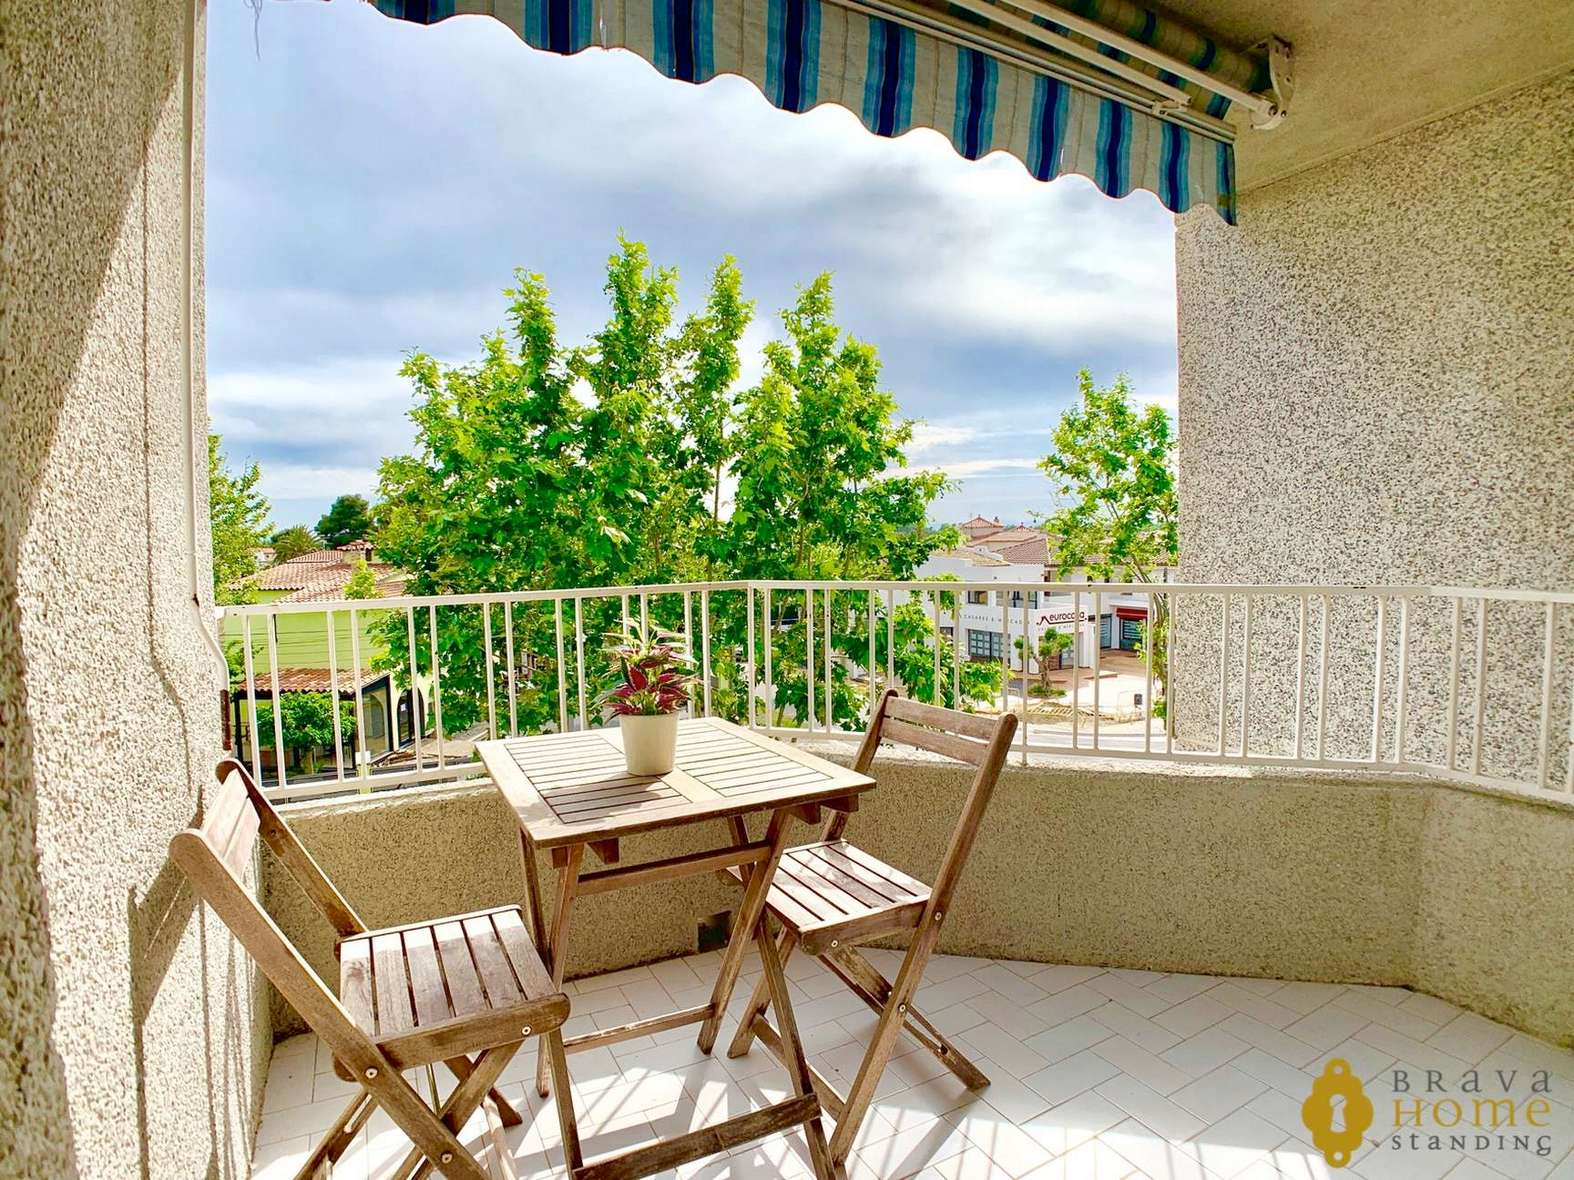 Superb duplex apartment with large terrace for sale in Empuriabrava